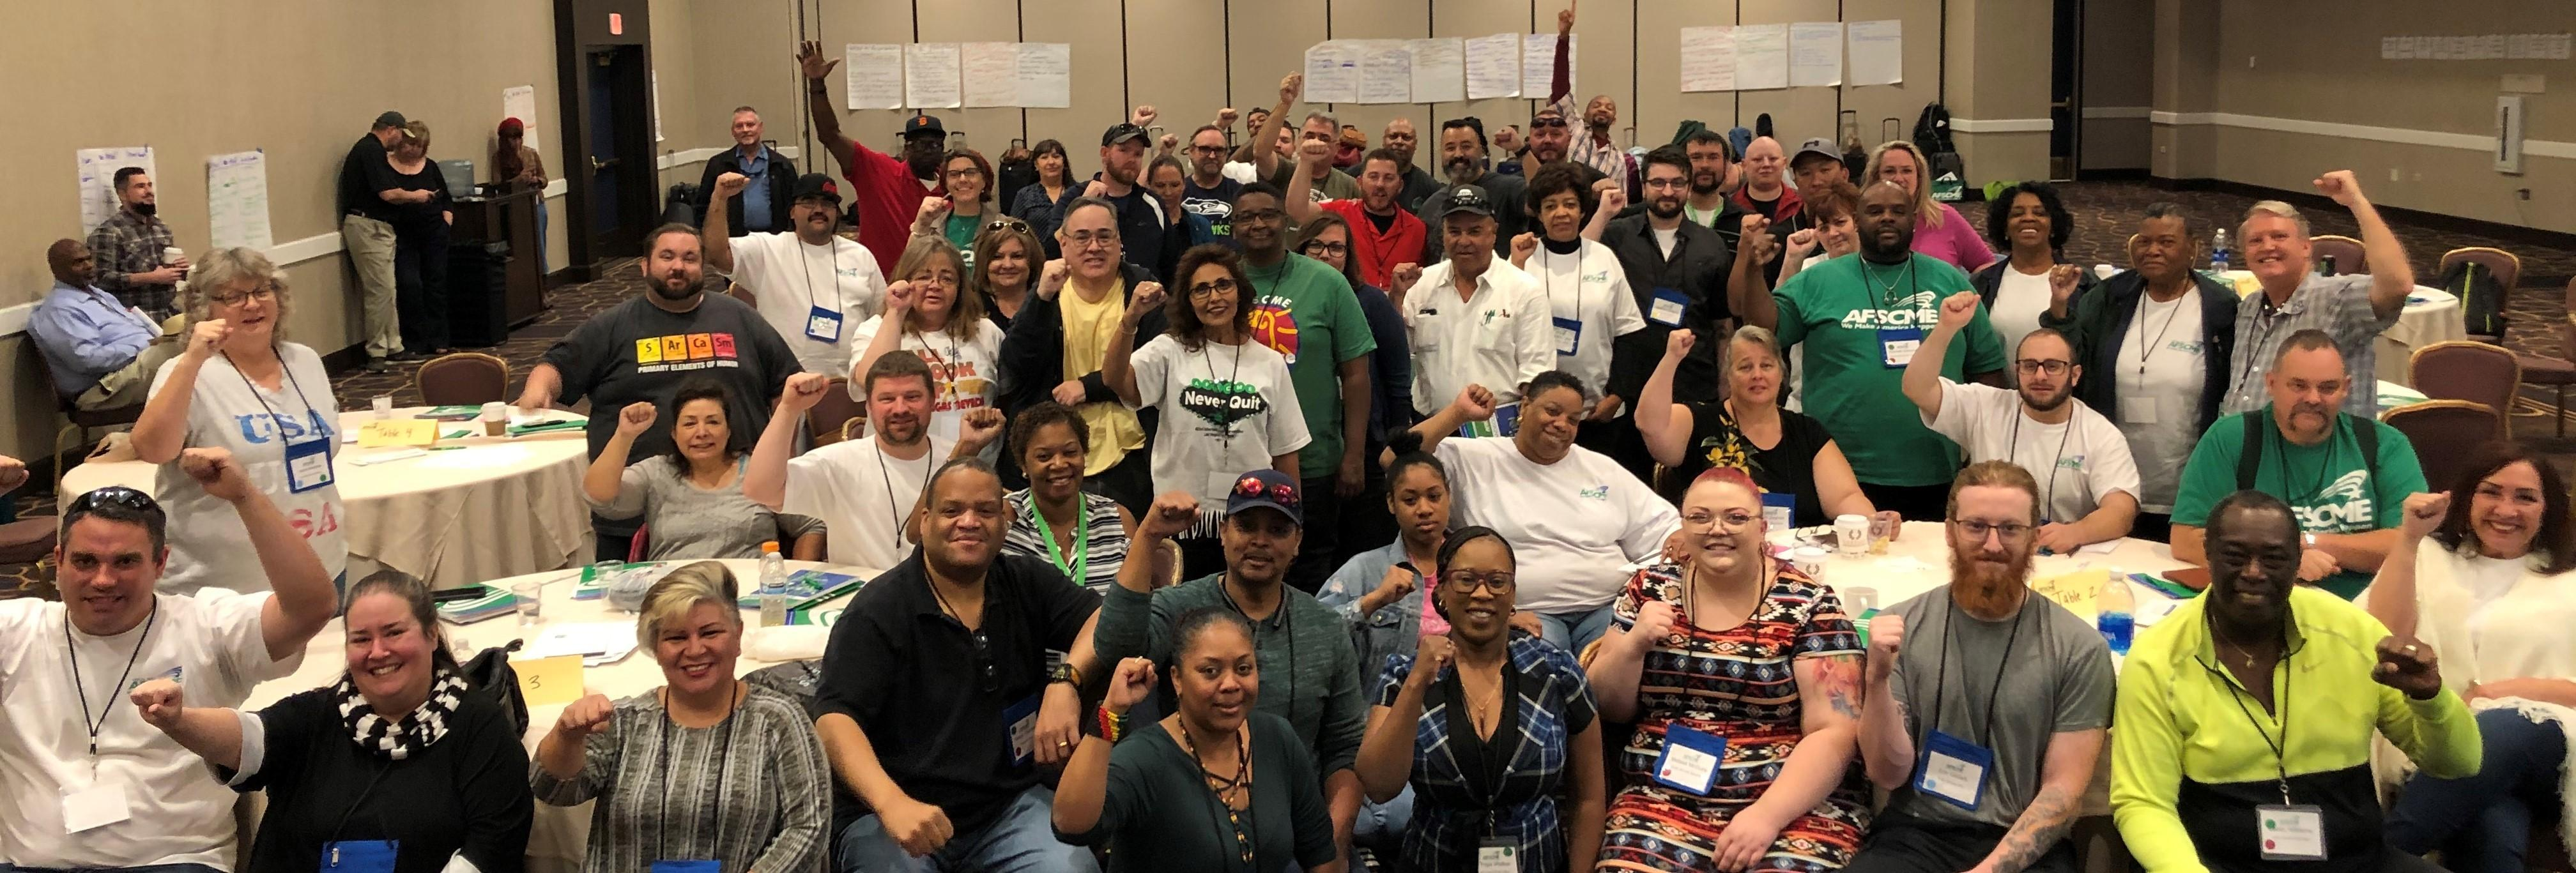 AFSCME Local 4041 activists at a Leadership Conference in October